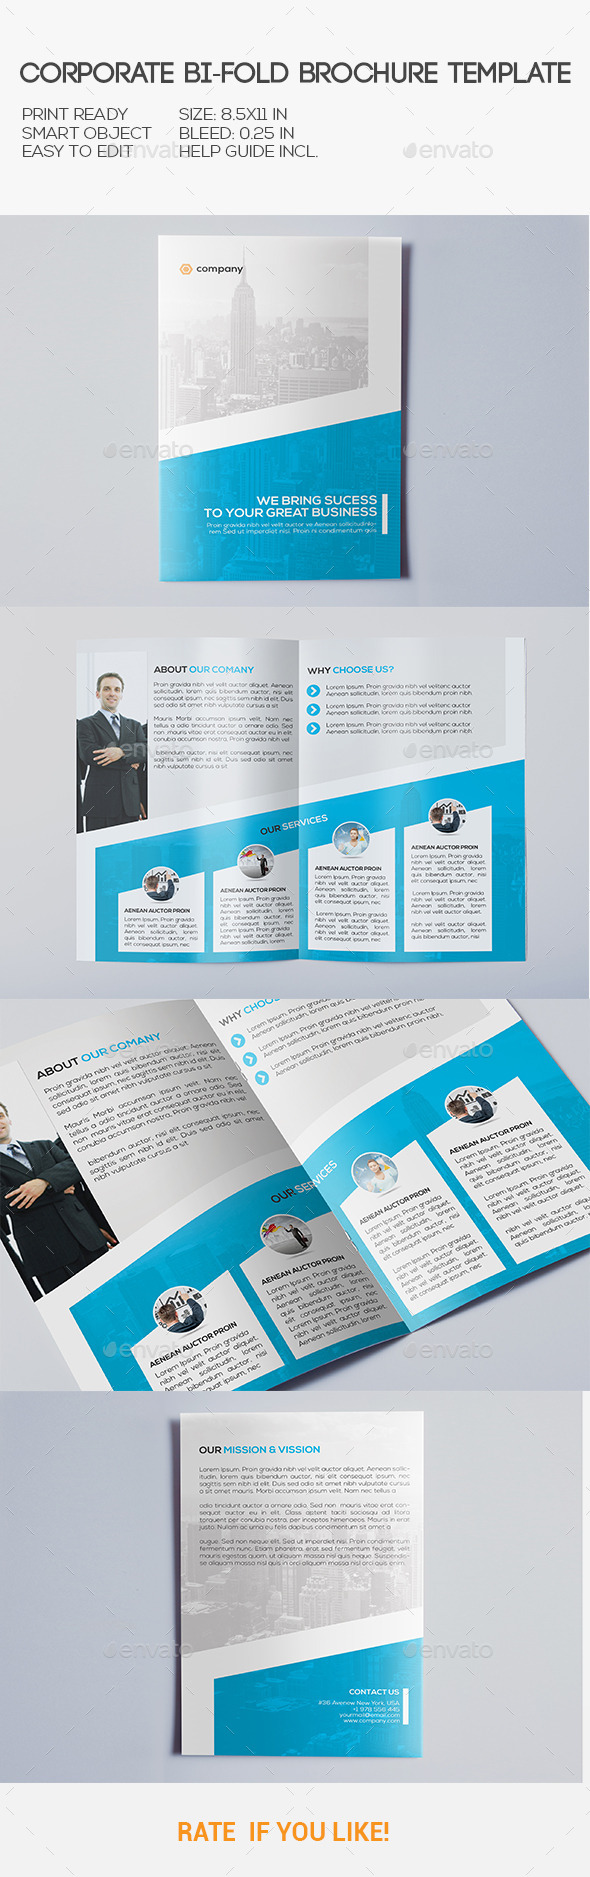 Corporate bi fold brochure corporate brochures for Bi fold brochure template illustrator